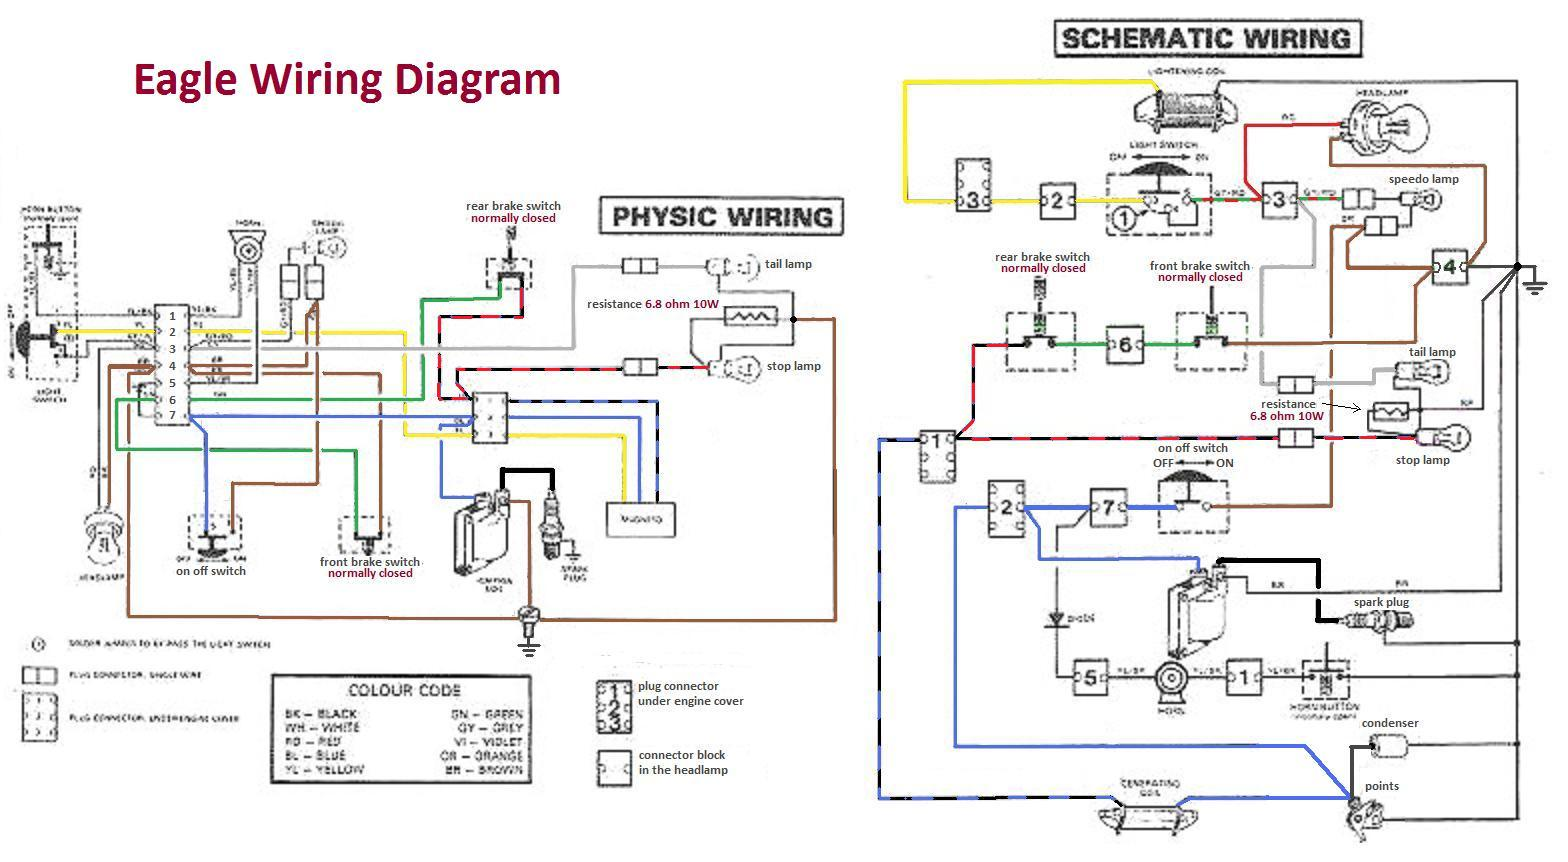 Yamaha Warrior 350 Wiring Diagram Opinions About 1999 R6 Harness Suzuki Rm 250 Get Free Image Electrical